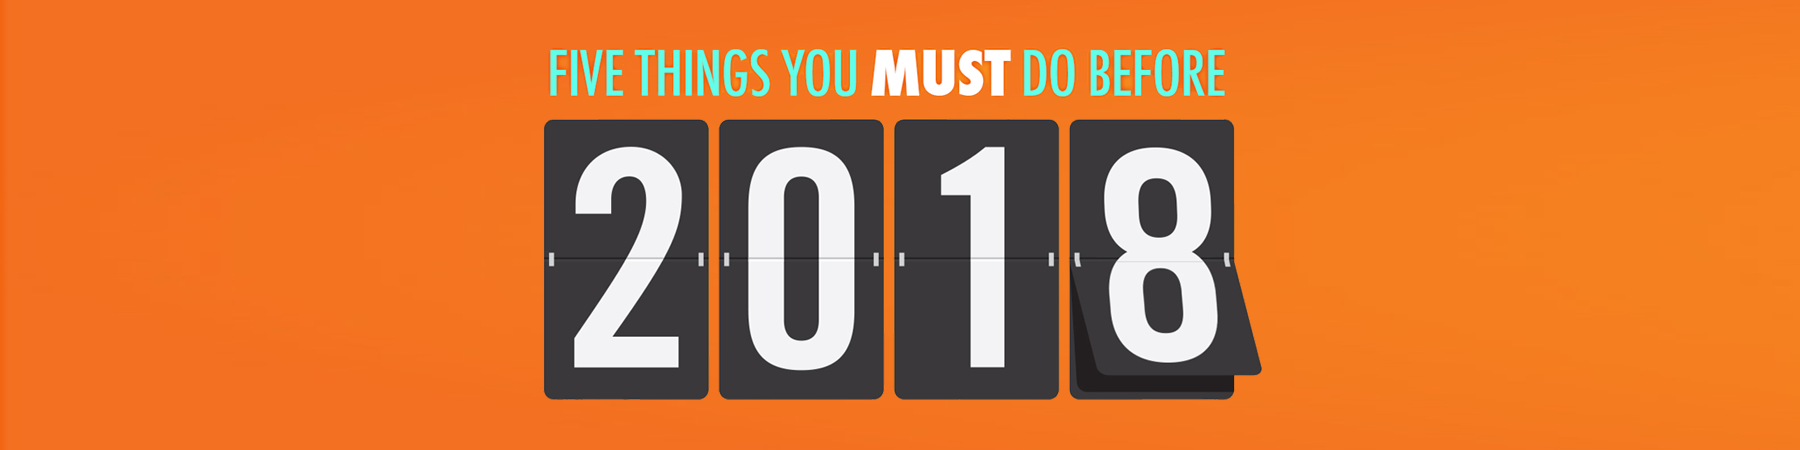 FIVE THINGS YOU MUST DO BEFORE 2018